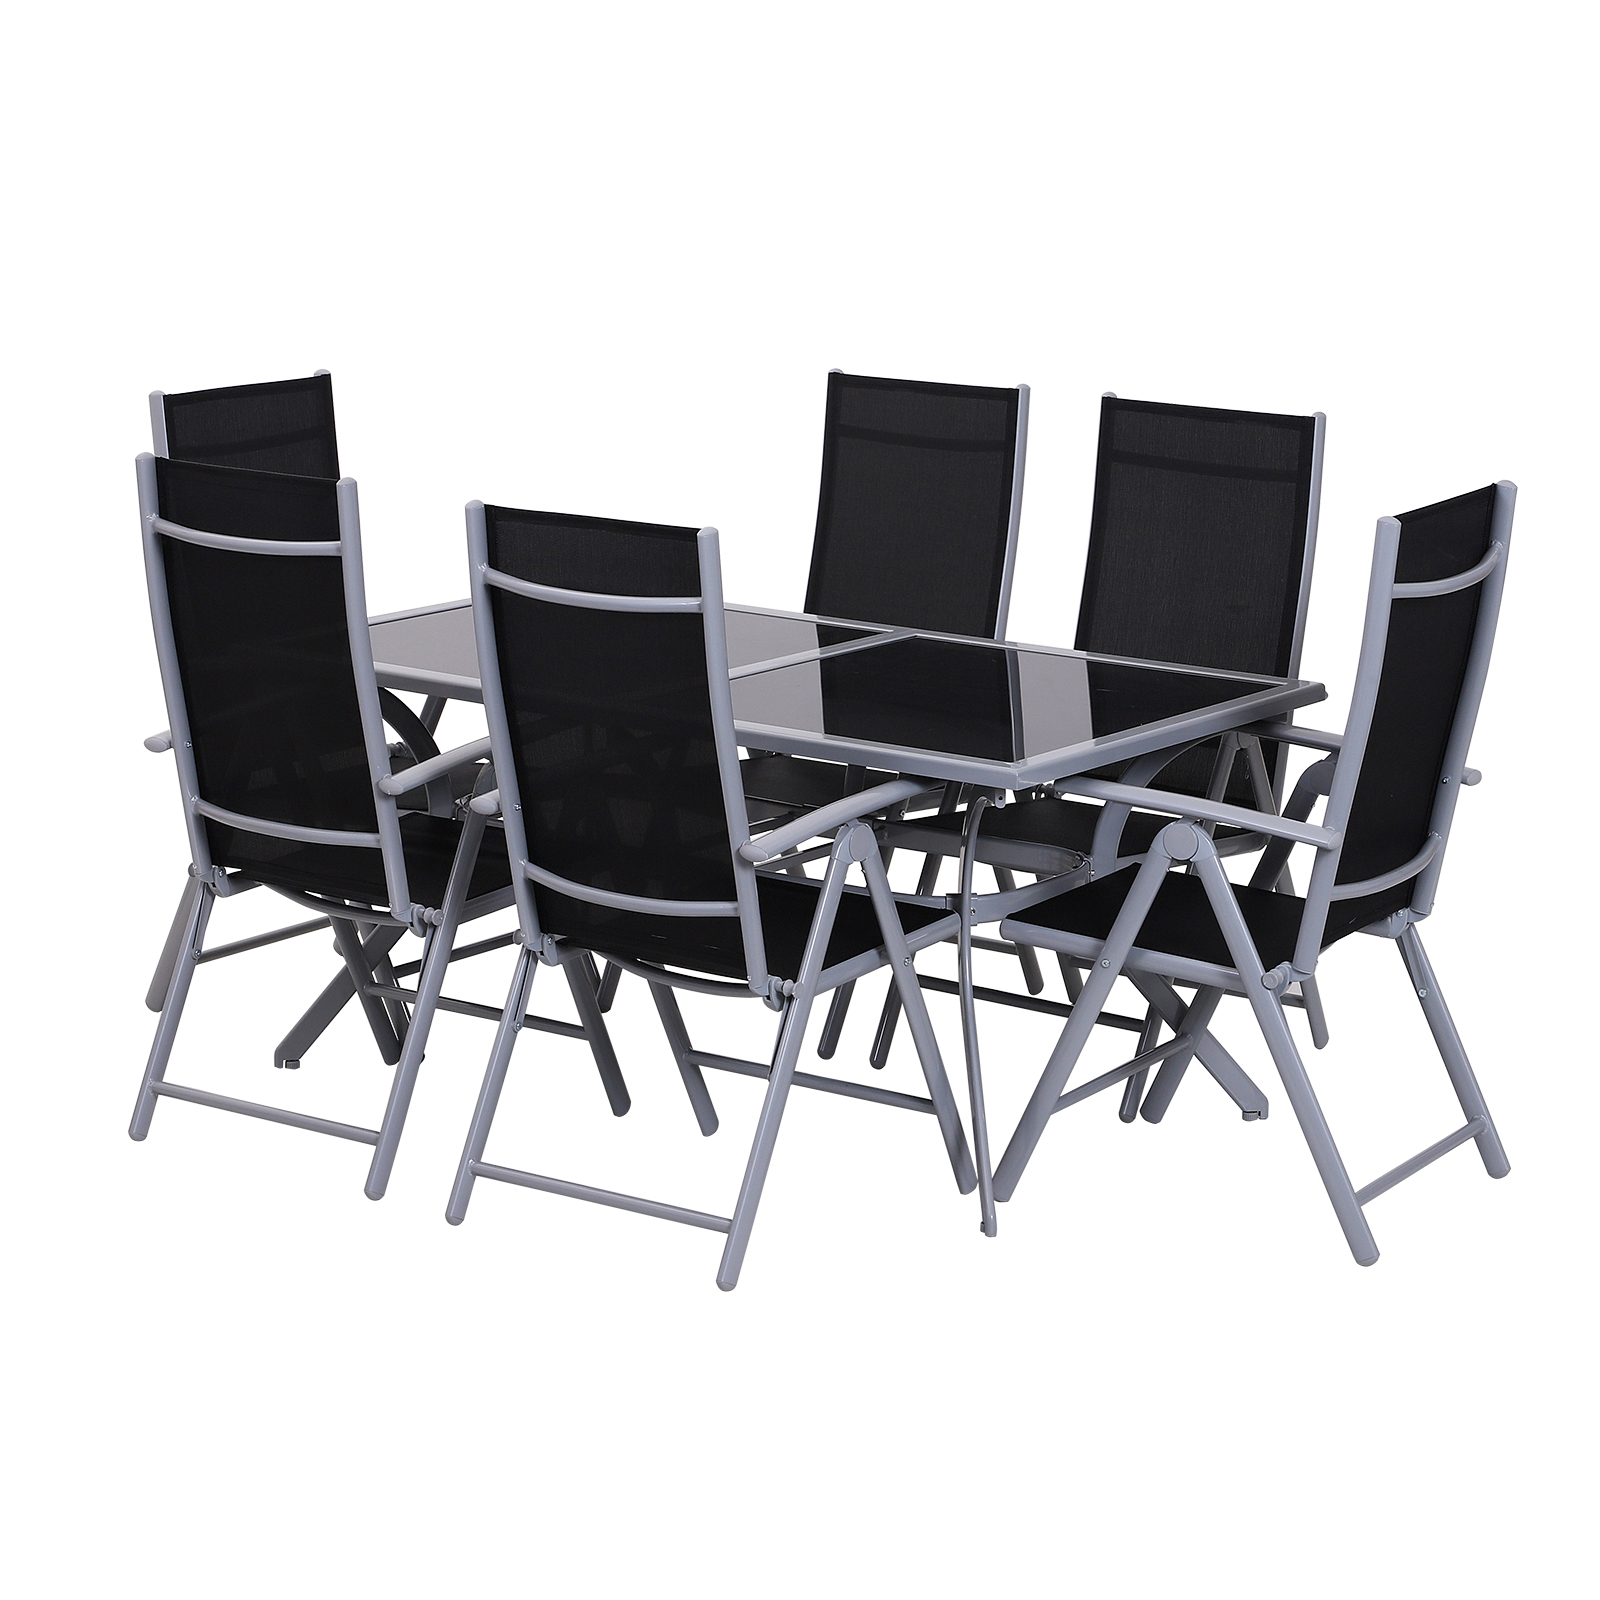 Outsunny Set Garden Furniture Table With 6 Chairs Reclining Back To 7 Layers Structure Patent